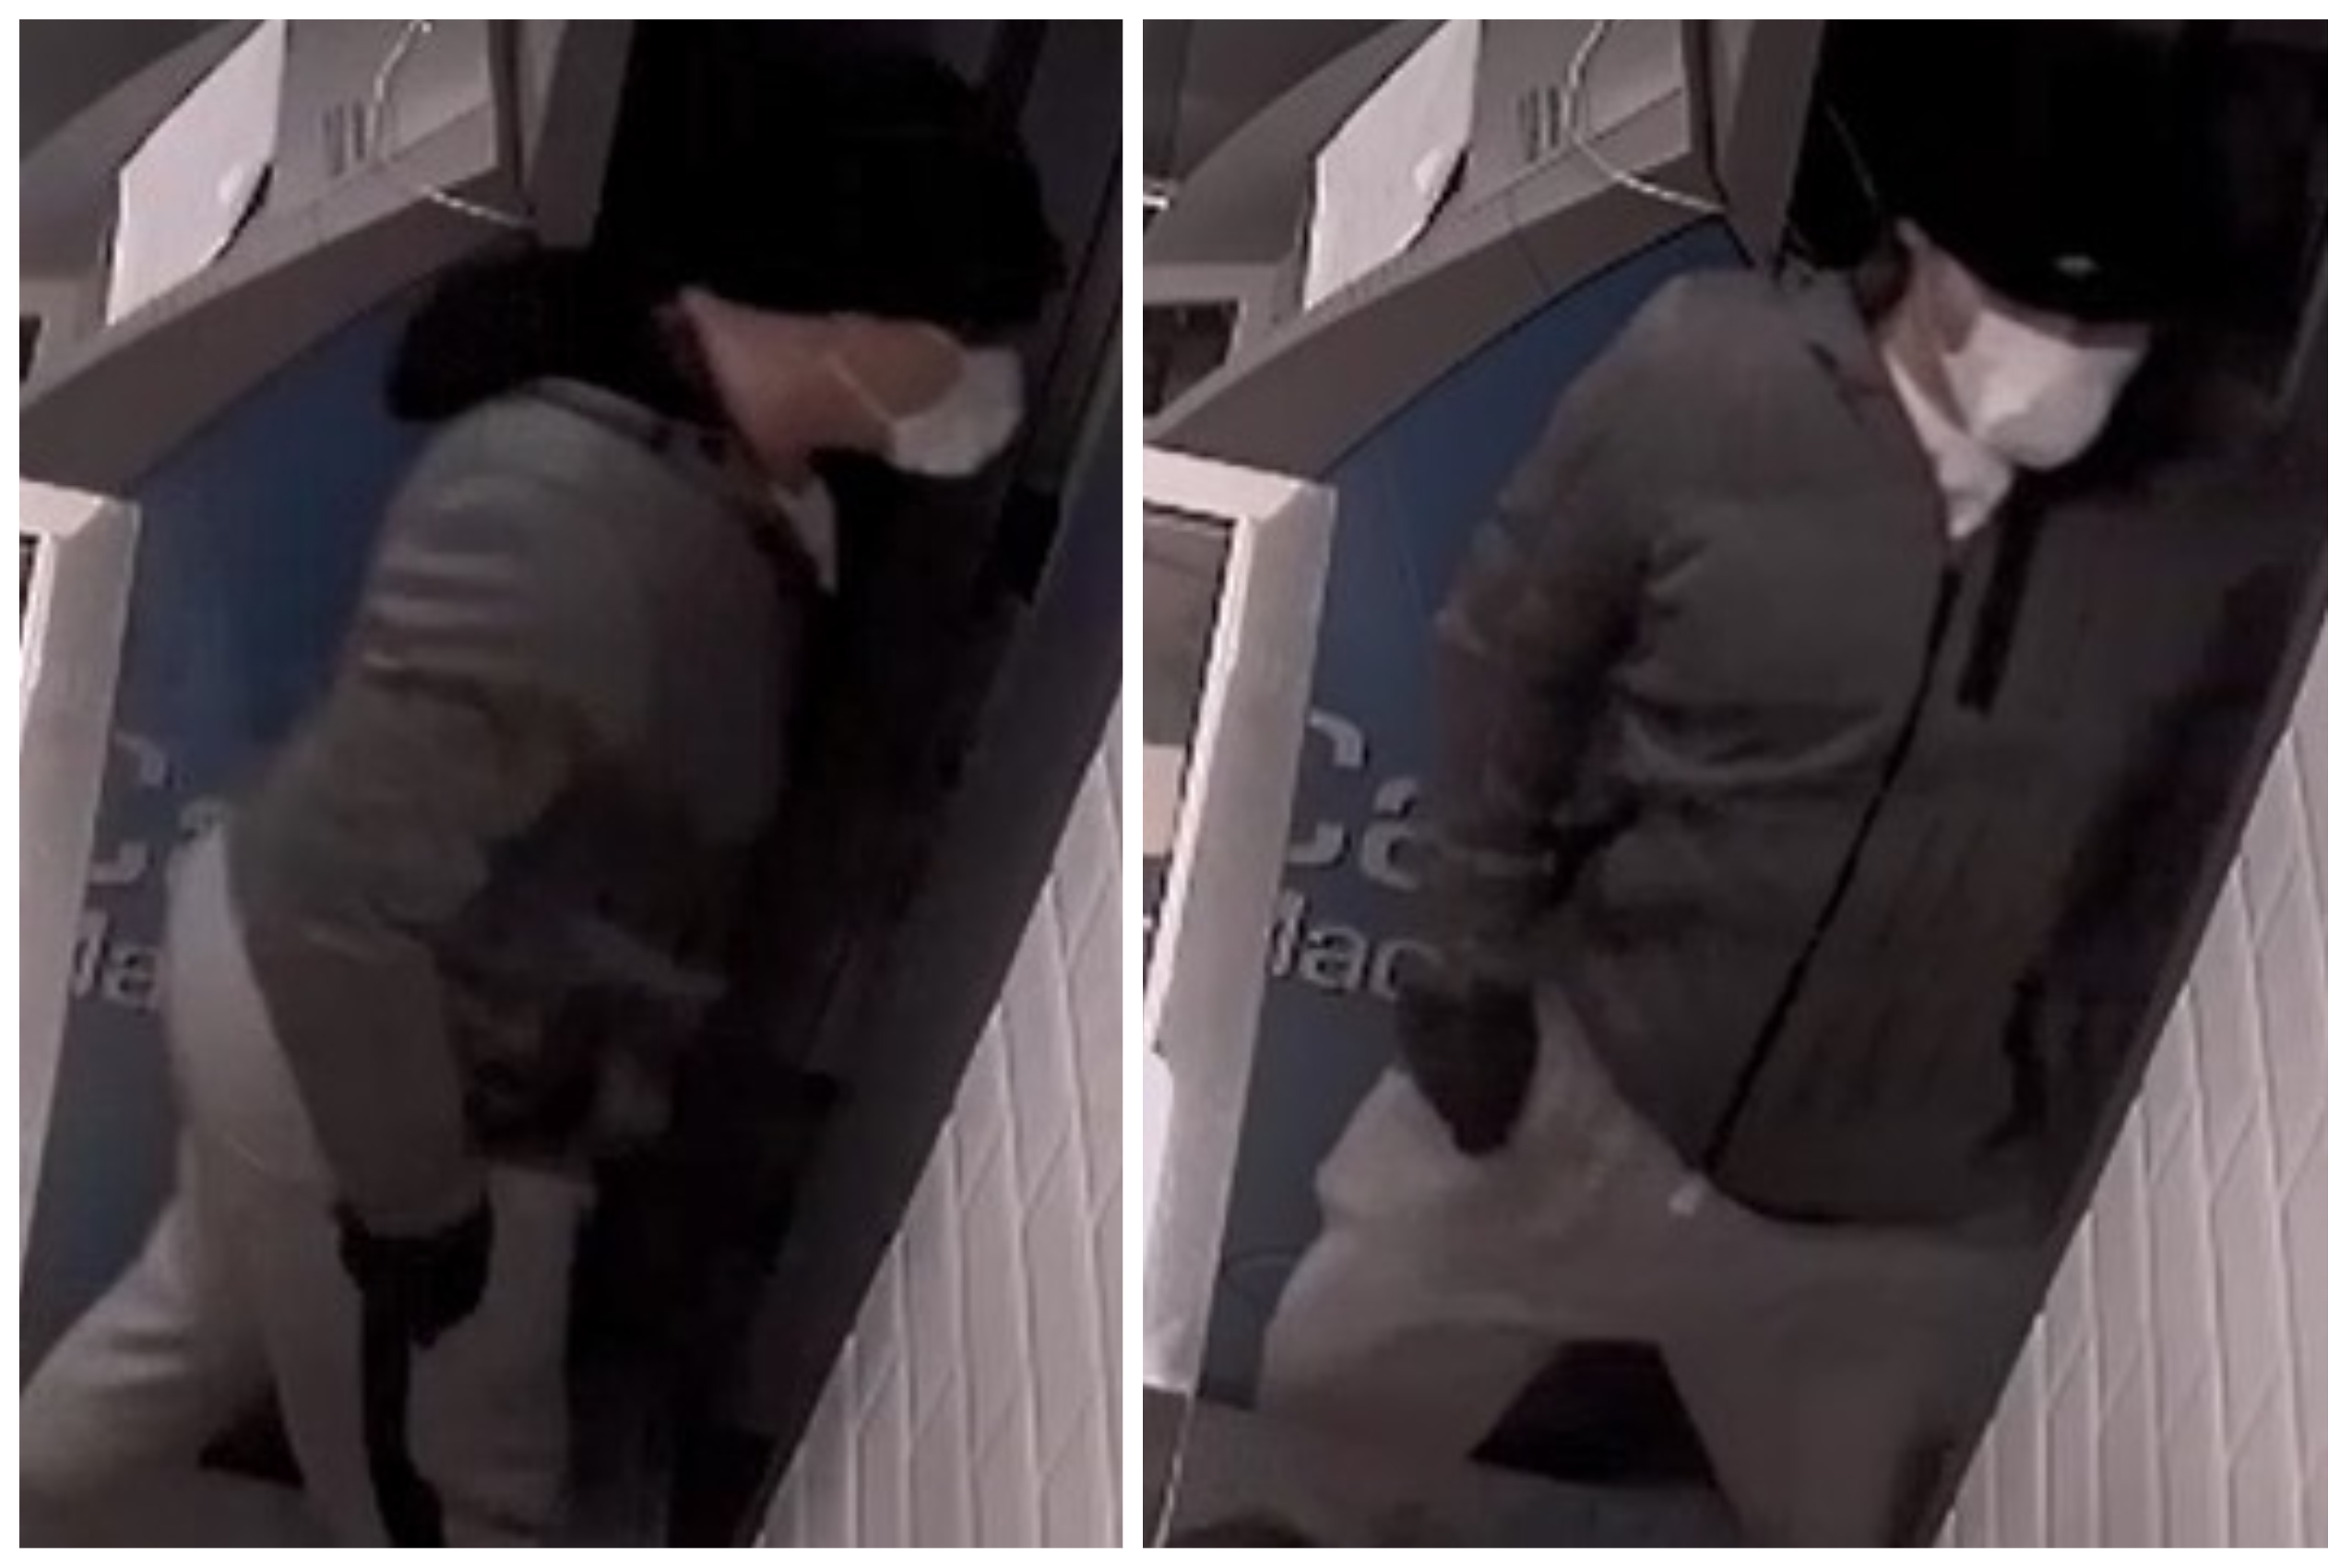 Police have released CCTV footage of a man they wish to speak to